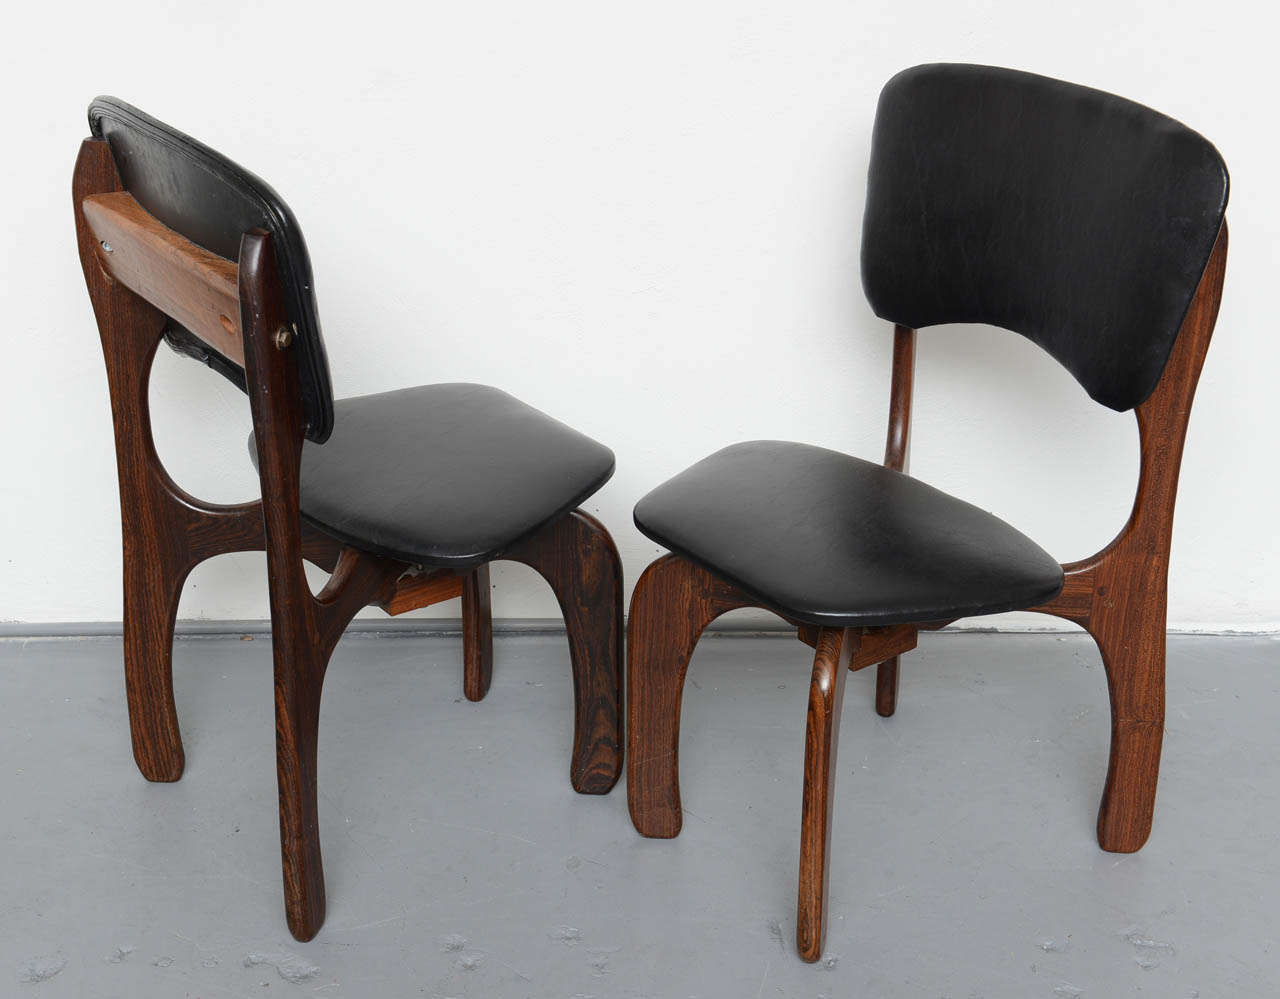 1970s Rosewood Chairs by Don Shoemaker, Mexico For Sale 2